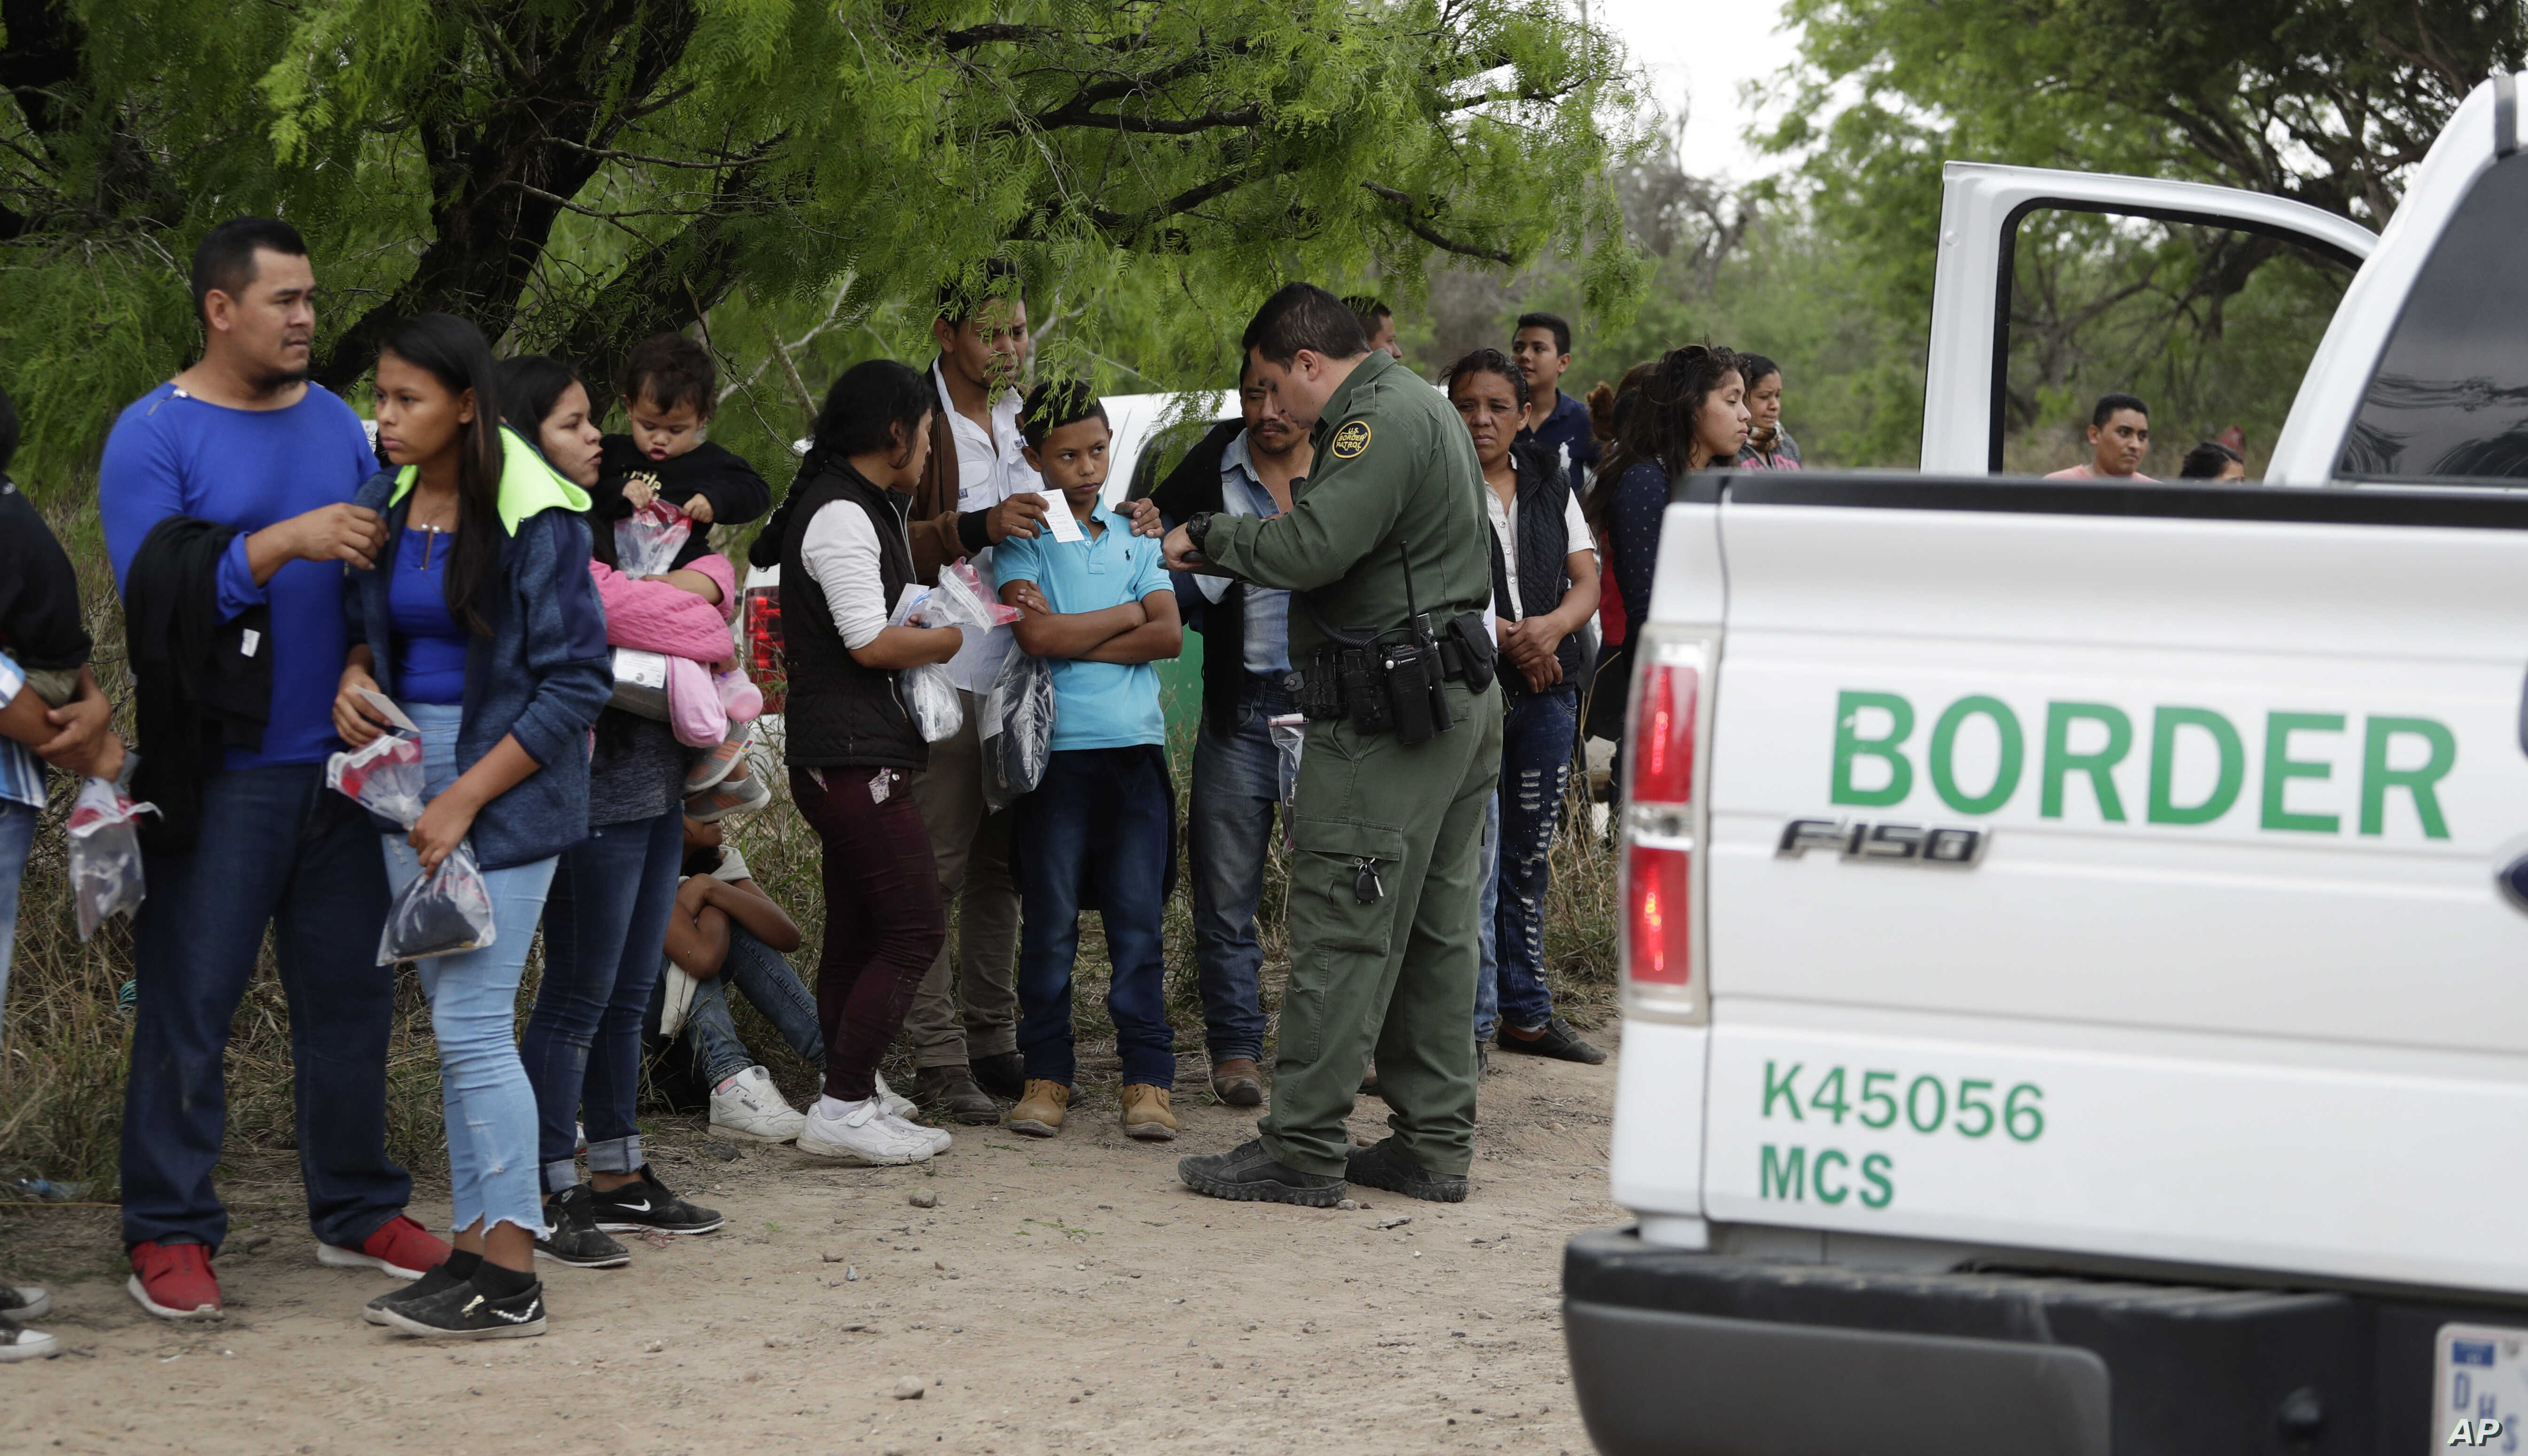 FILE - A U.S. Border Patrol agent checks the names and documents of families who crossed the nearby U.S.-Mexico border, near McAllen, Texas, March 14, 2019.